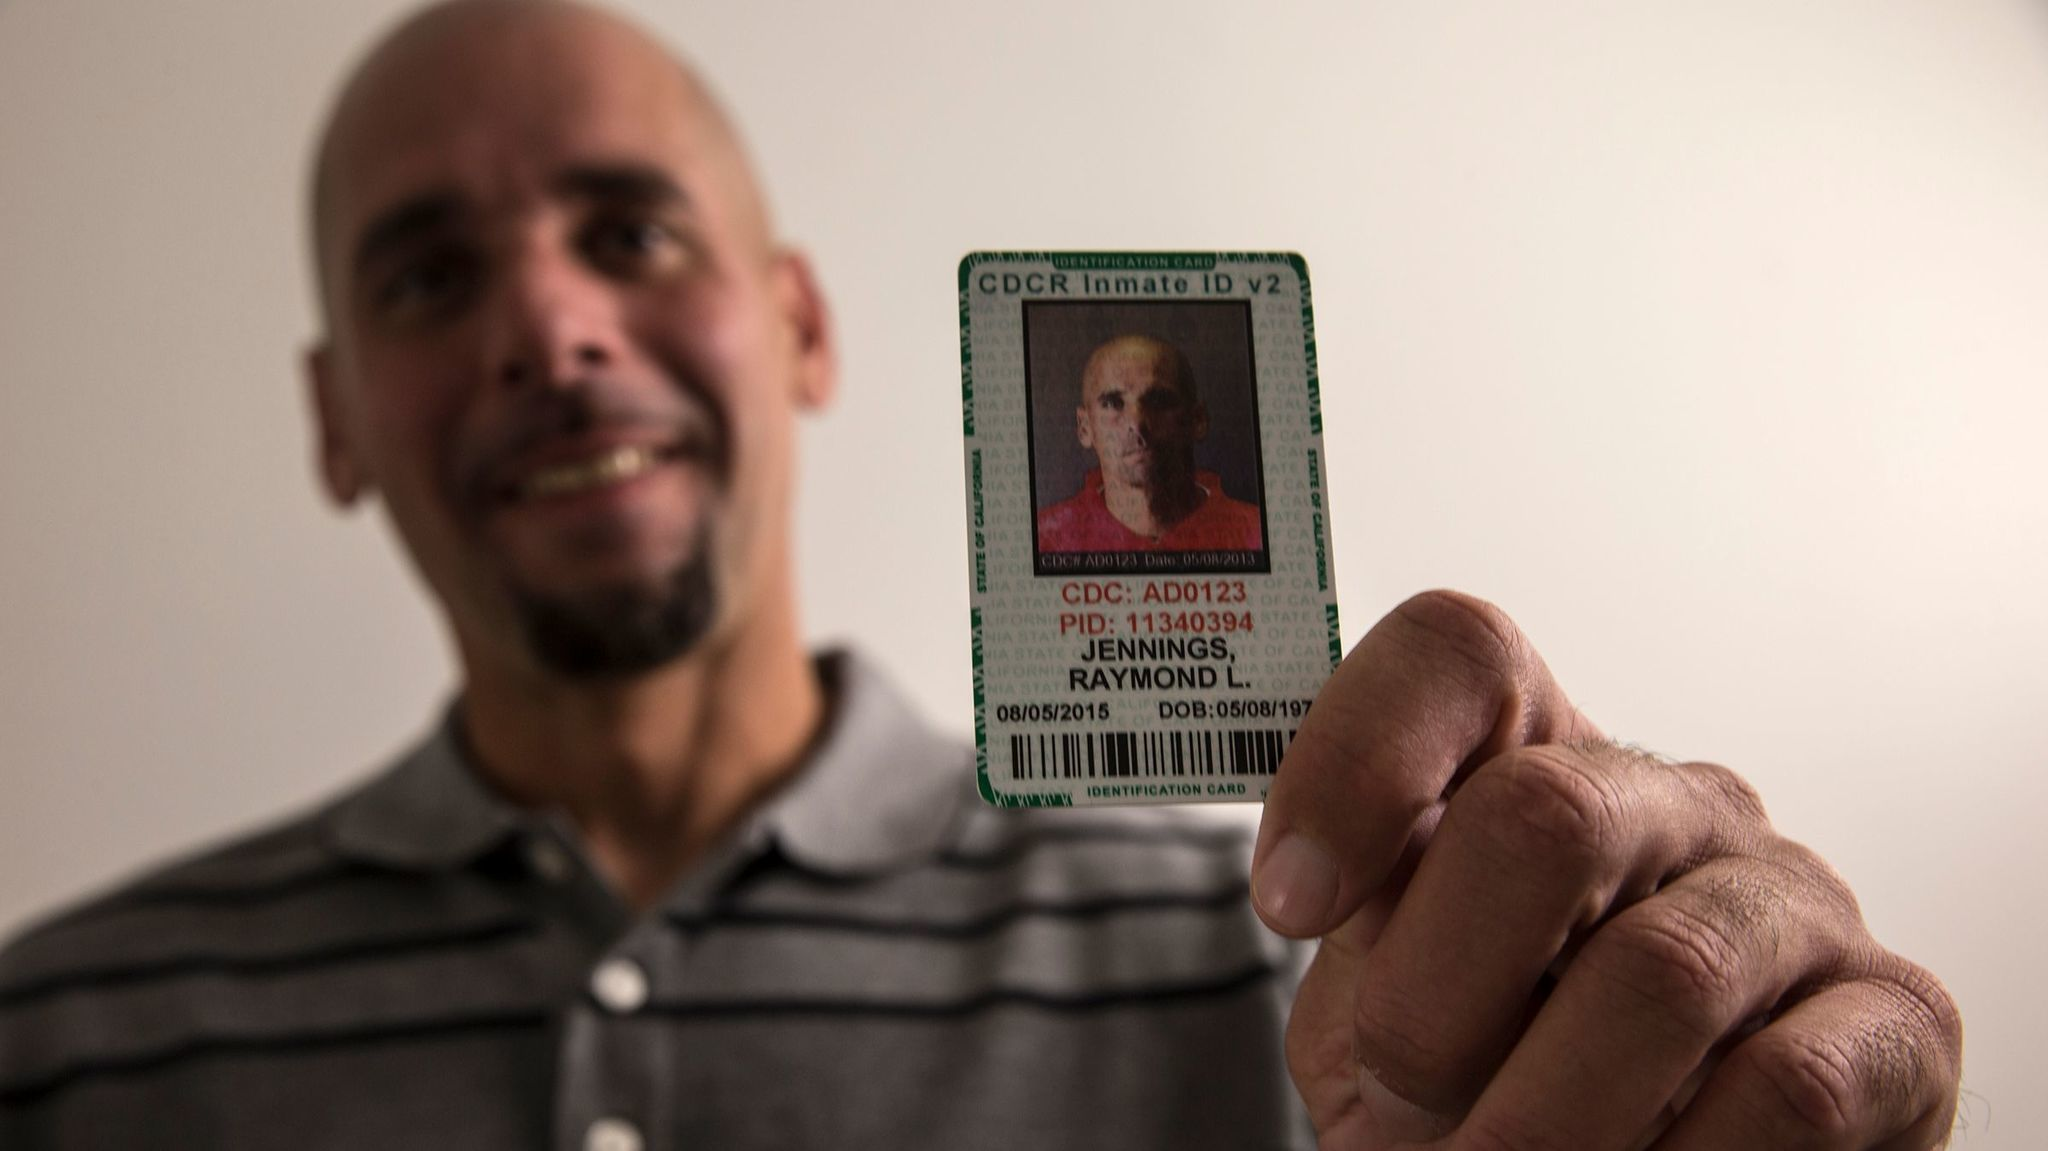 Raymond Lee Jennings holds his prison identification card. Now a free man, he spent 11 years behind bars for murder before the case against him unraveled in dramatic fashion.